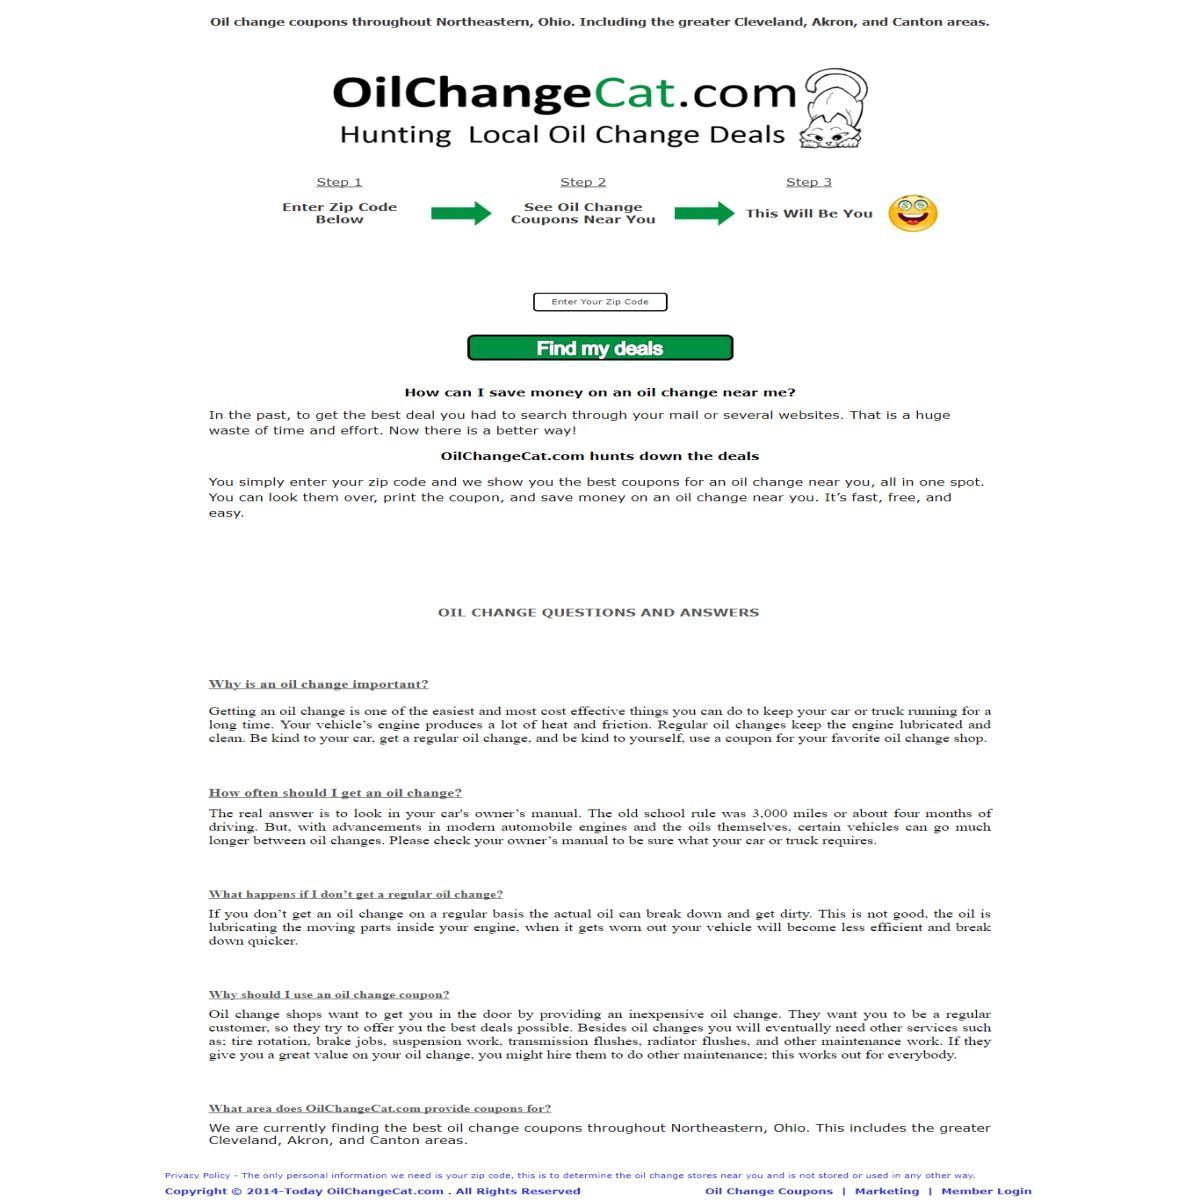 Oil change cat are currently finding the best oil change coupons oil change cat are currently finding the best oil change coupons throughout northeastern ohio you simply enter your zip code and they show you the best solutioingenieria Image collections